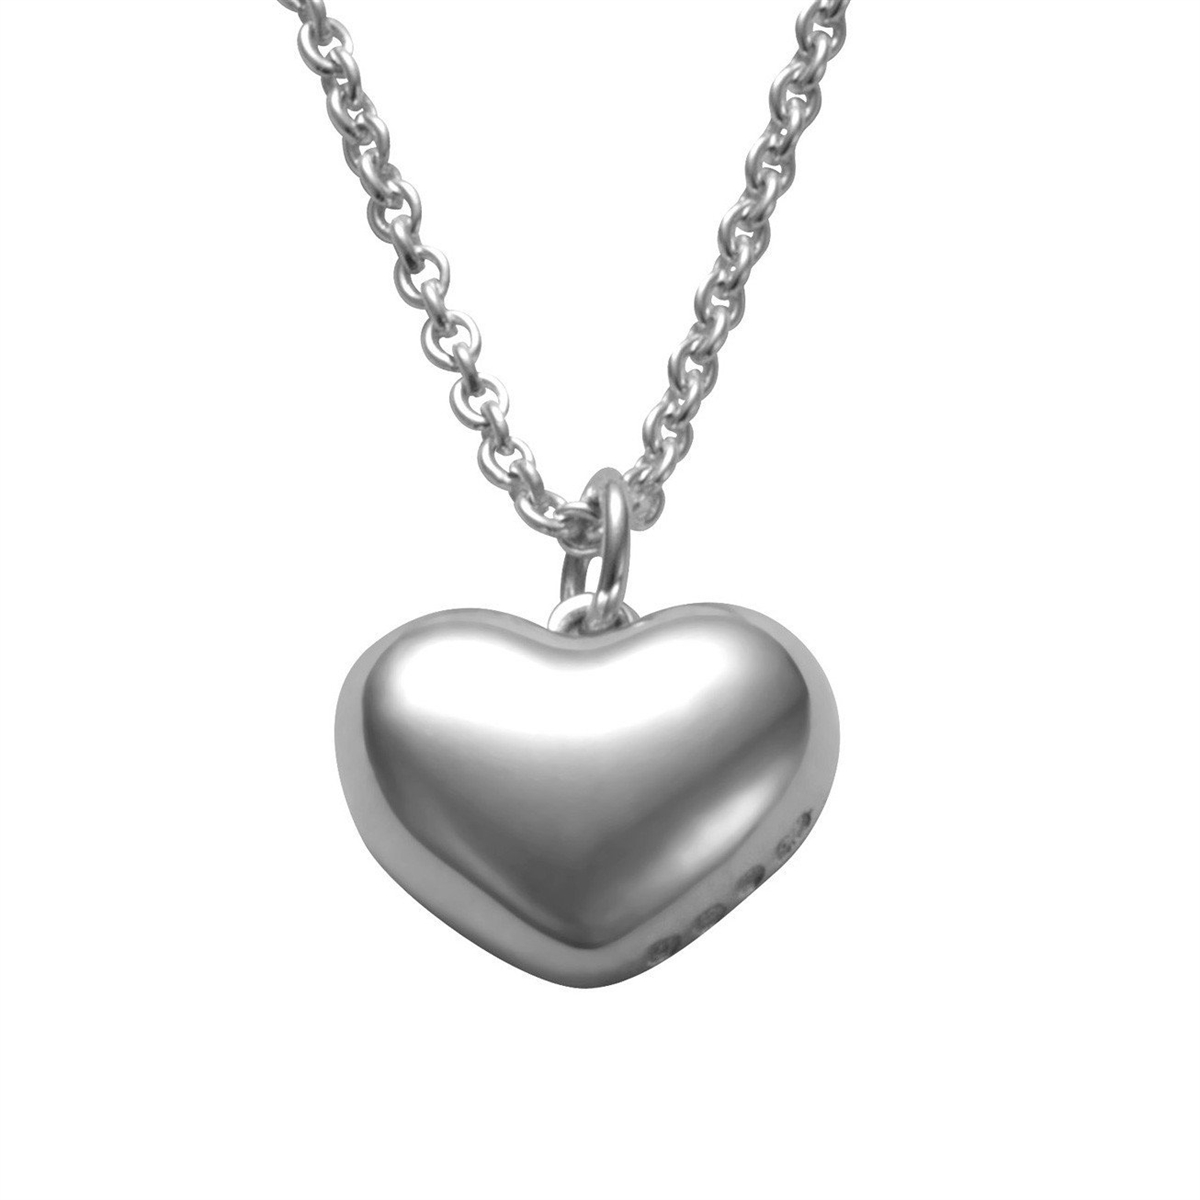 a9bb455c666 Sterling Silver Polished Heart Pendant Necklace by Comyns of London